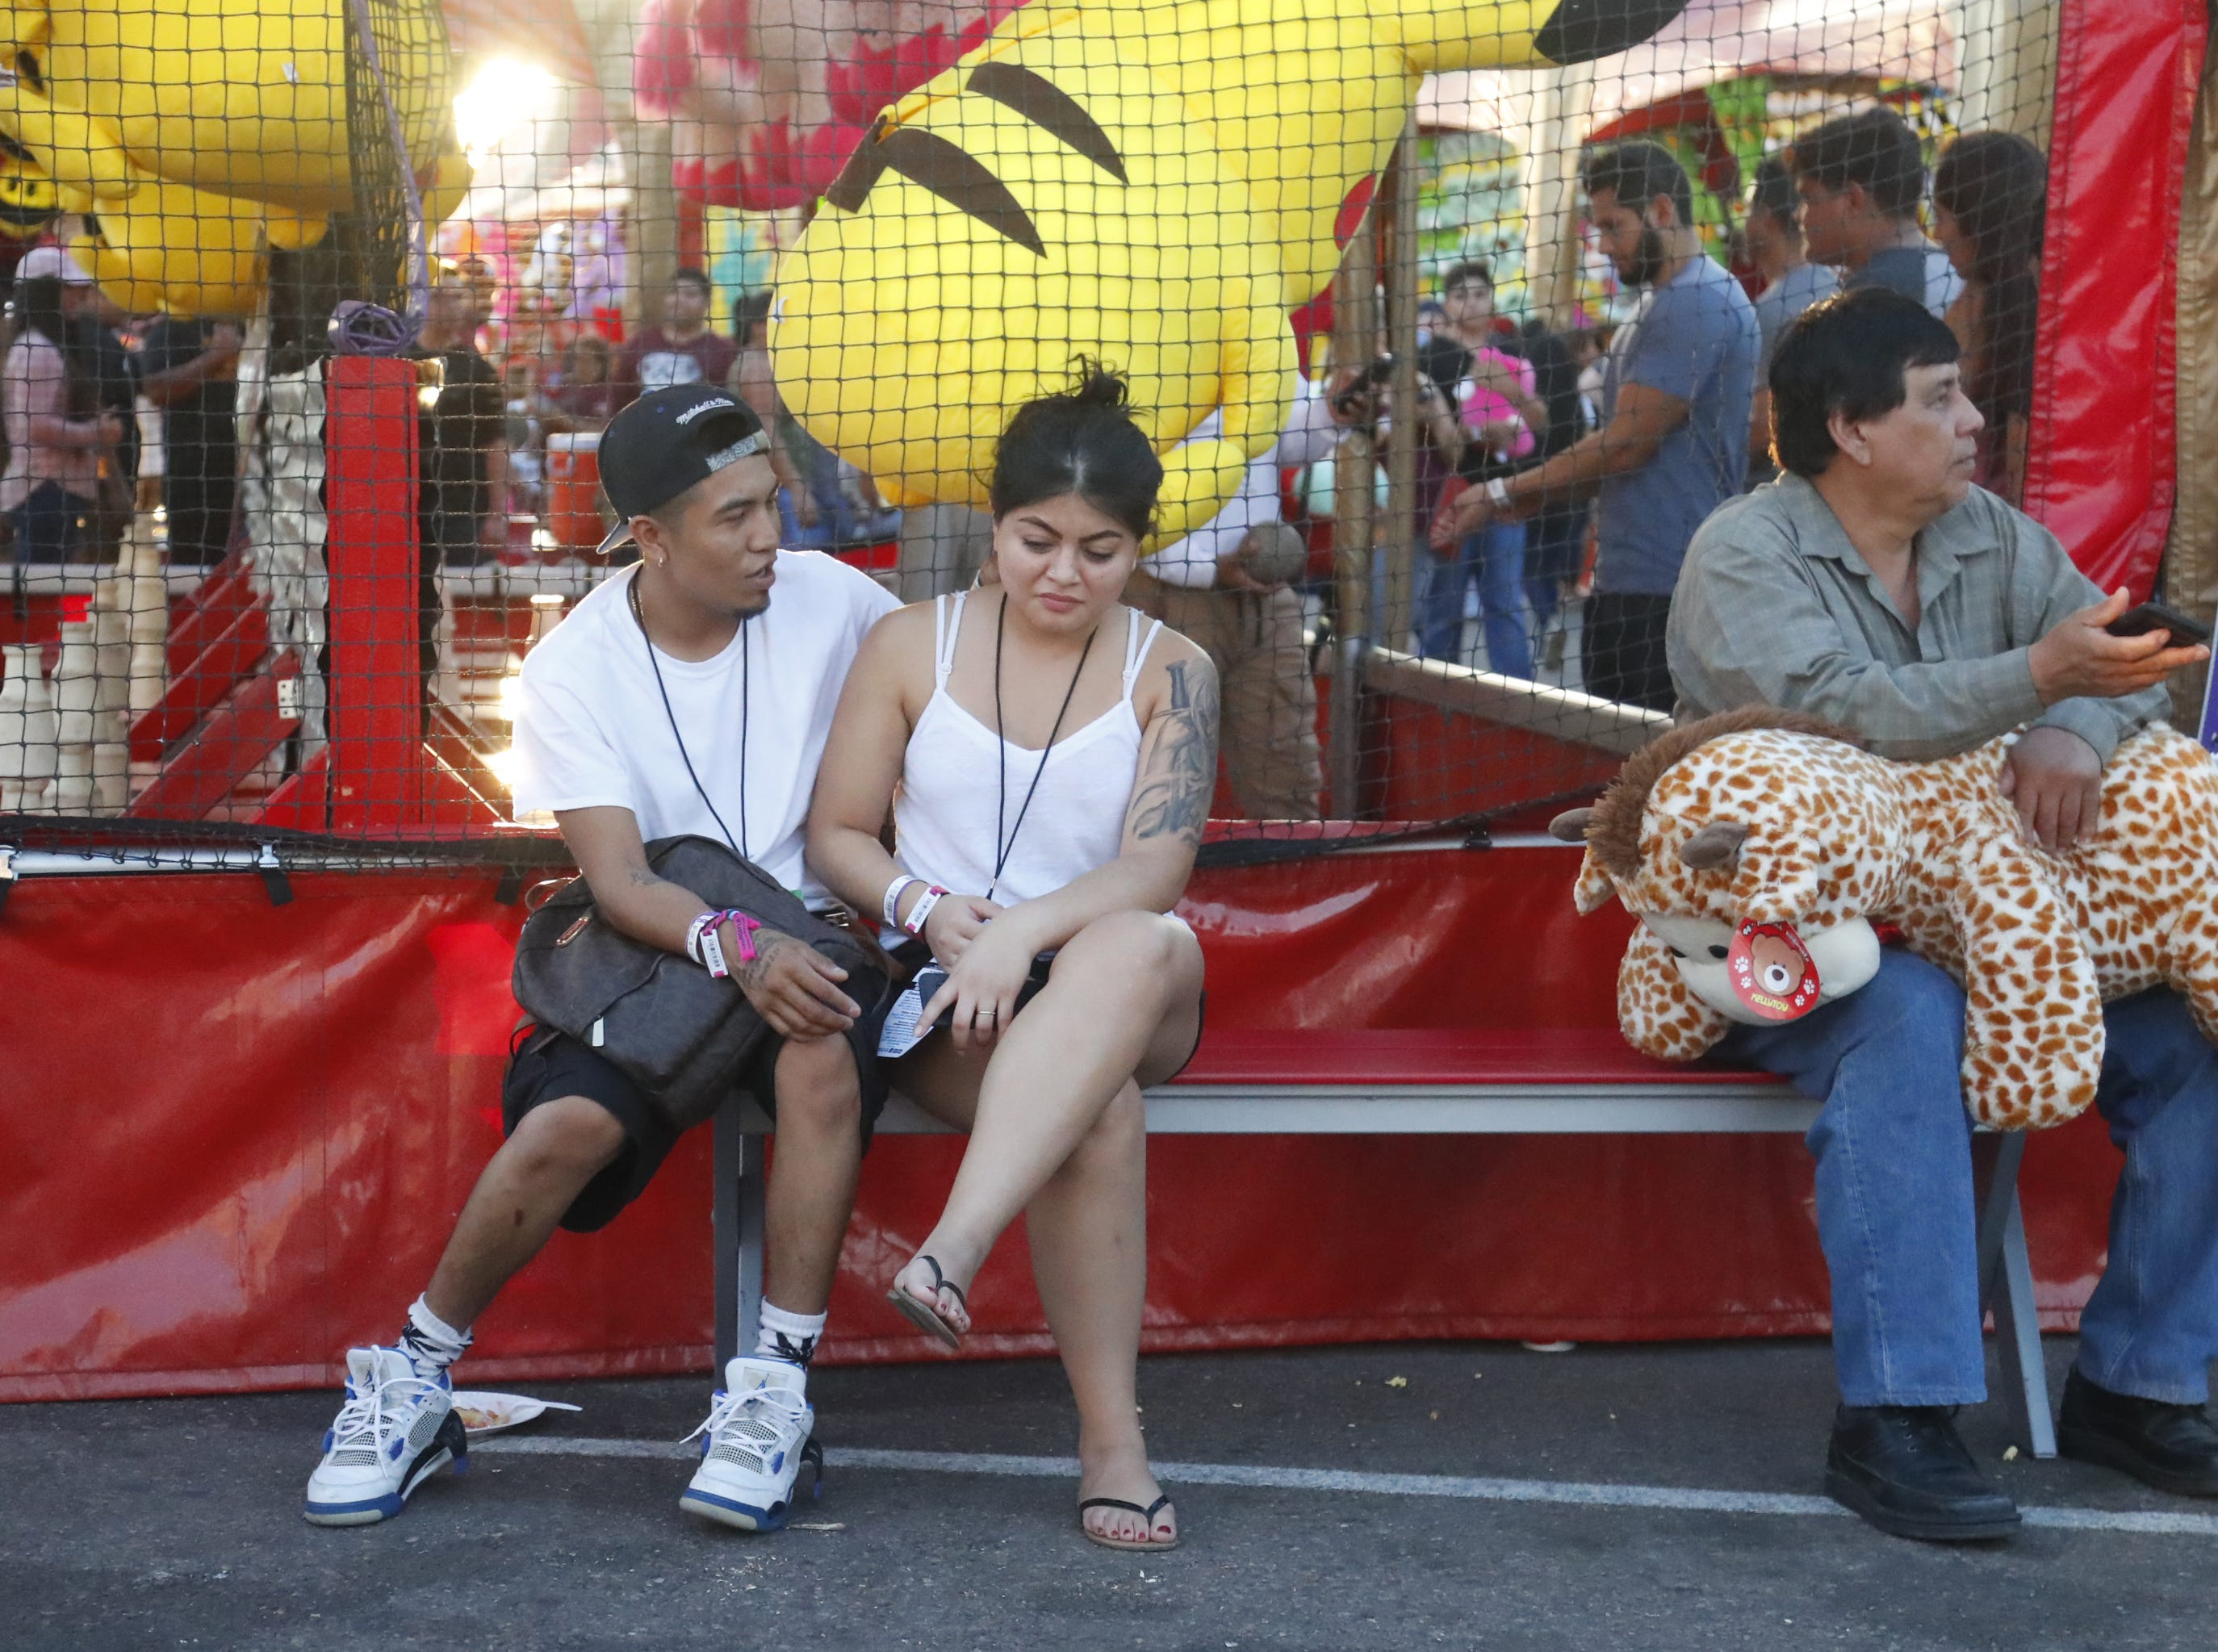 Fair-goers grab a seat waiting for friends or family at the Arizona State Fair in Phoenix, Ariz. on October 21, 2018.